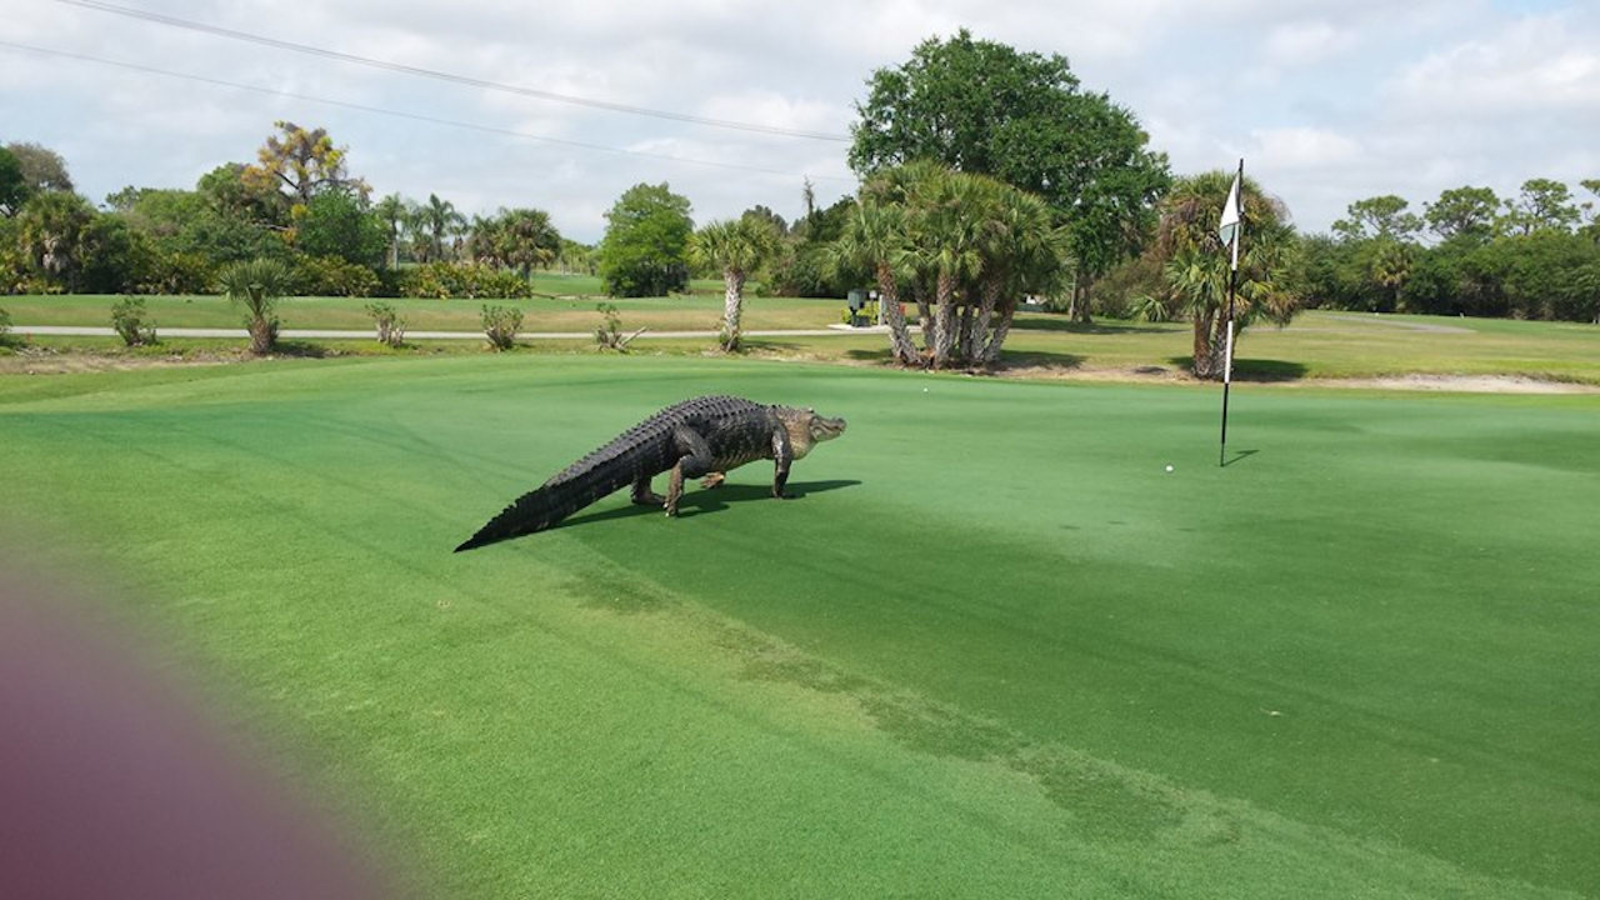 Photos Show Massive Alligator Roaming Golf Course In Englewood Florida Abc7 San Francisco